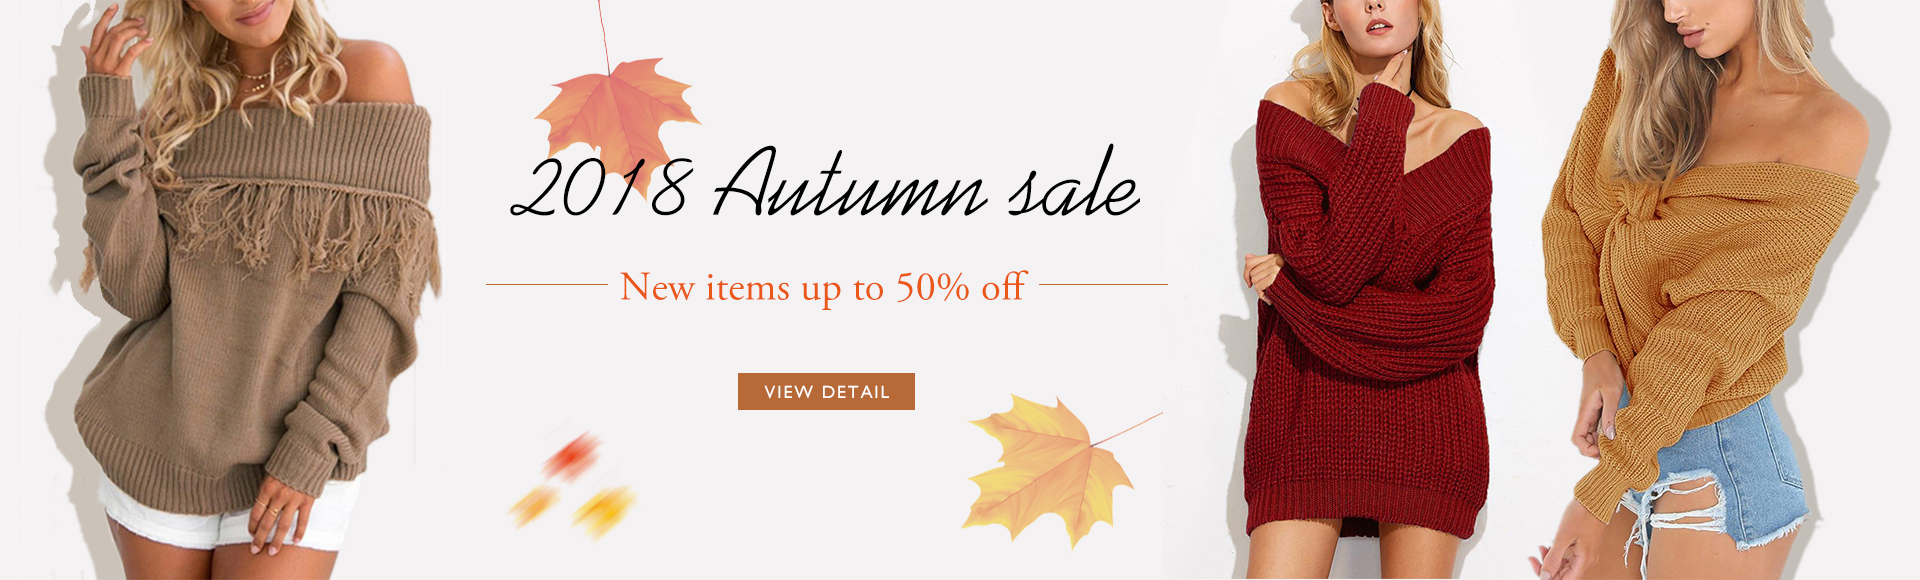 Autumn Sales 2018